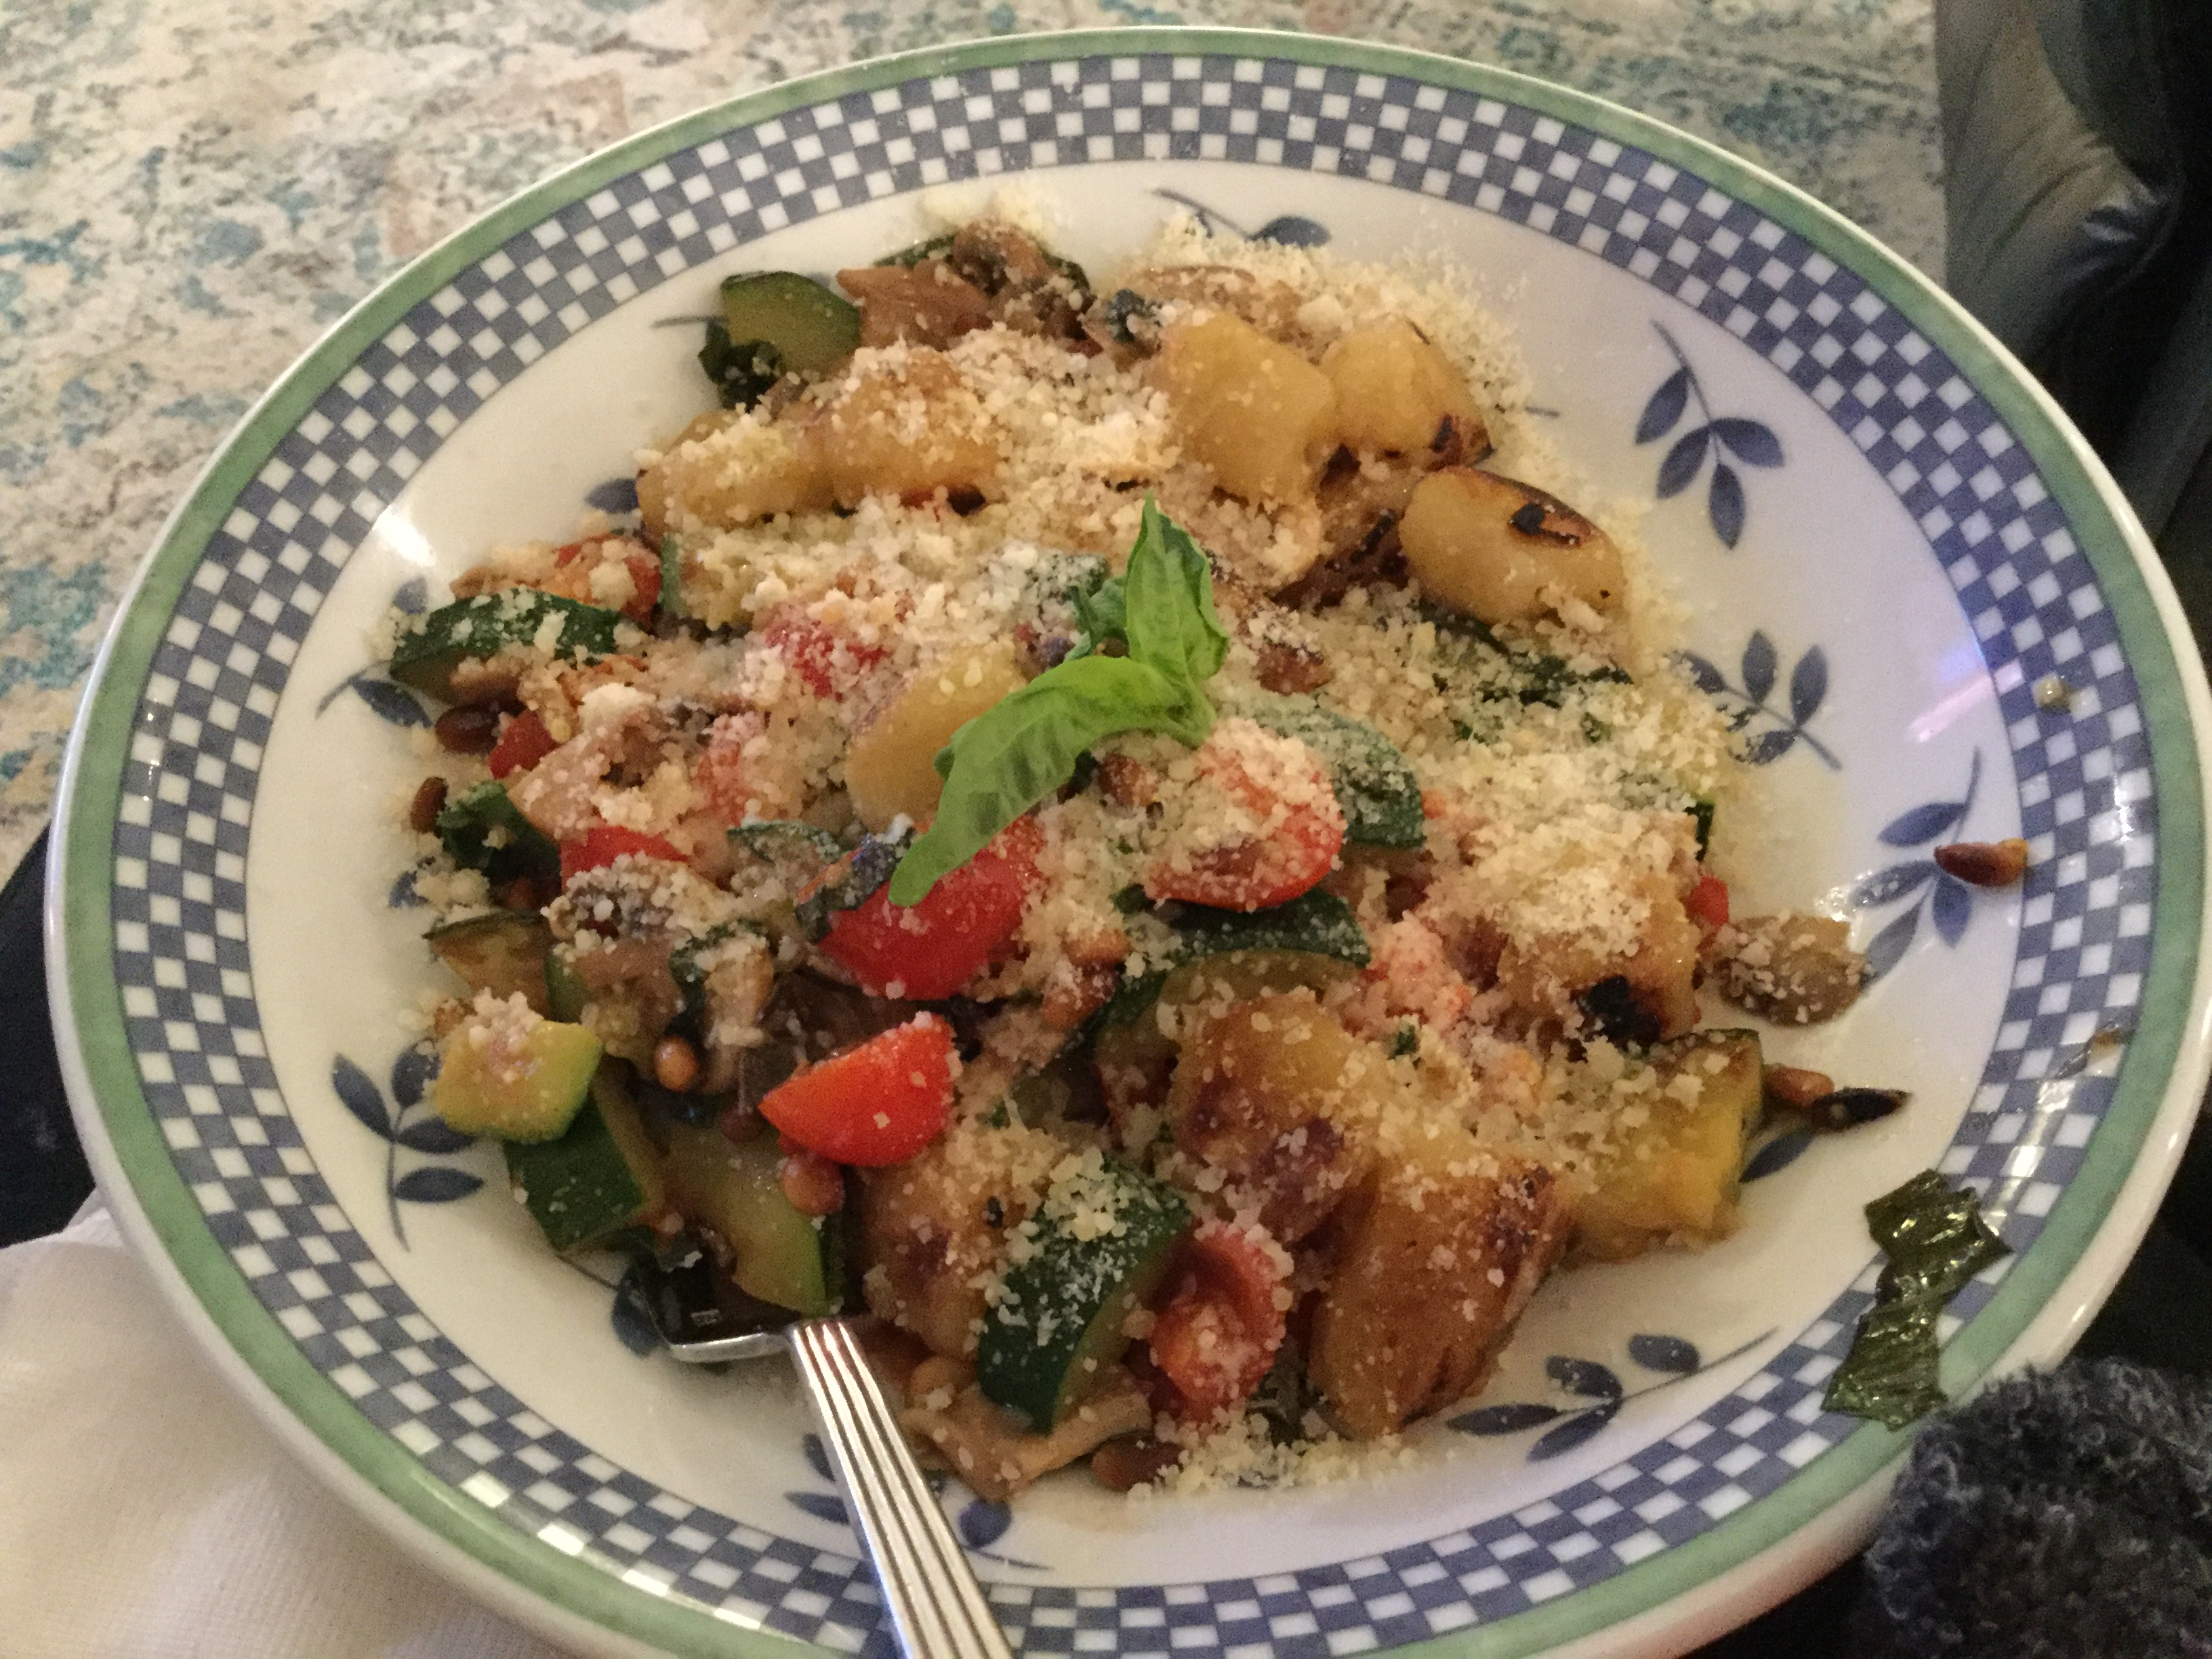 "Little pillows of potato pasta are cooked with mushrooms, grape tomatoes, zucchini, and fresh basil, and served topped with Parmesan cheese crisps. ""Potato gnocchi with wonderful crisp vegetables and basil make a delicious, rustic meal,"" says Dawn Camacho."